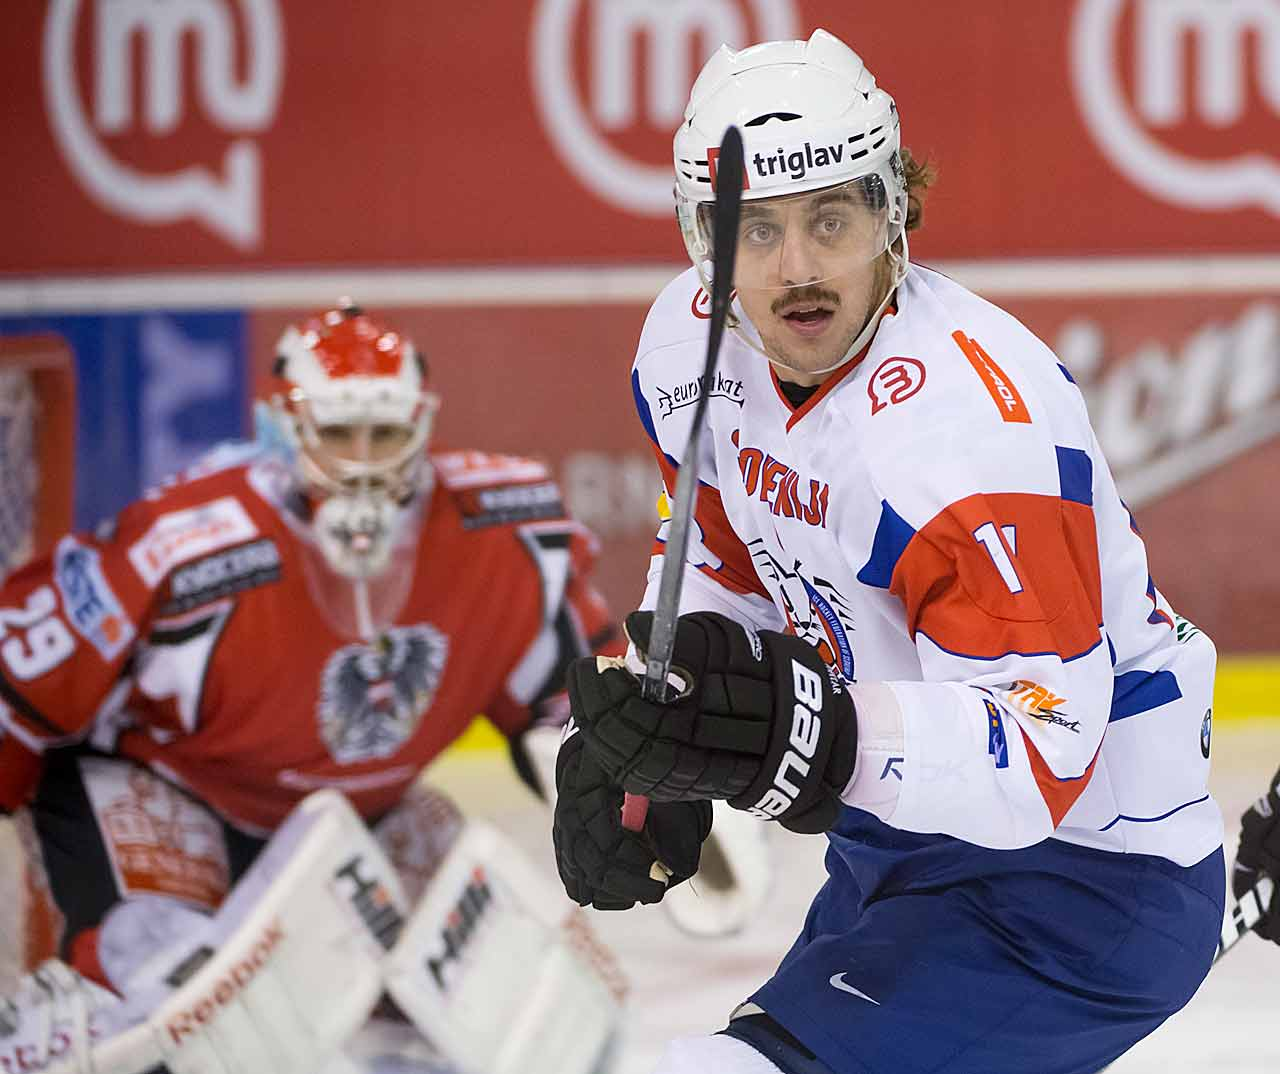 No one harbors any illusions about Slovenia's chances in these Games, but Kopitar's presence gives this team a dimension it didn't have when it qualified for an Olympic berth last year. His size, skill and championship pedigree will make everyone wearing that uniform play two inches taller and 20 pounds heaver, and while that's unlikely to help them win a game, his presence makes a statement that Slovenia belongs on the international stage. -- Allan Muir